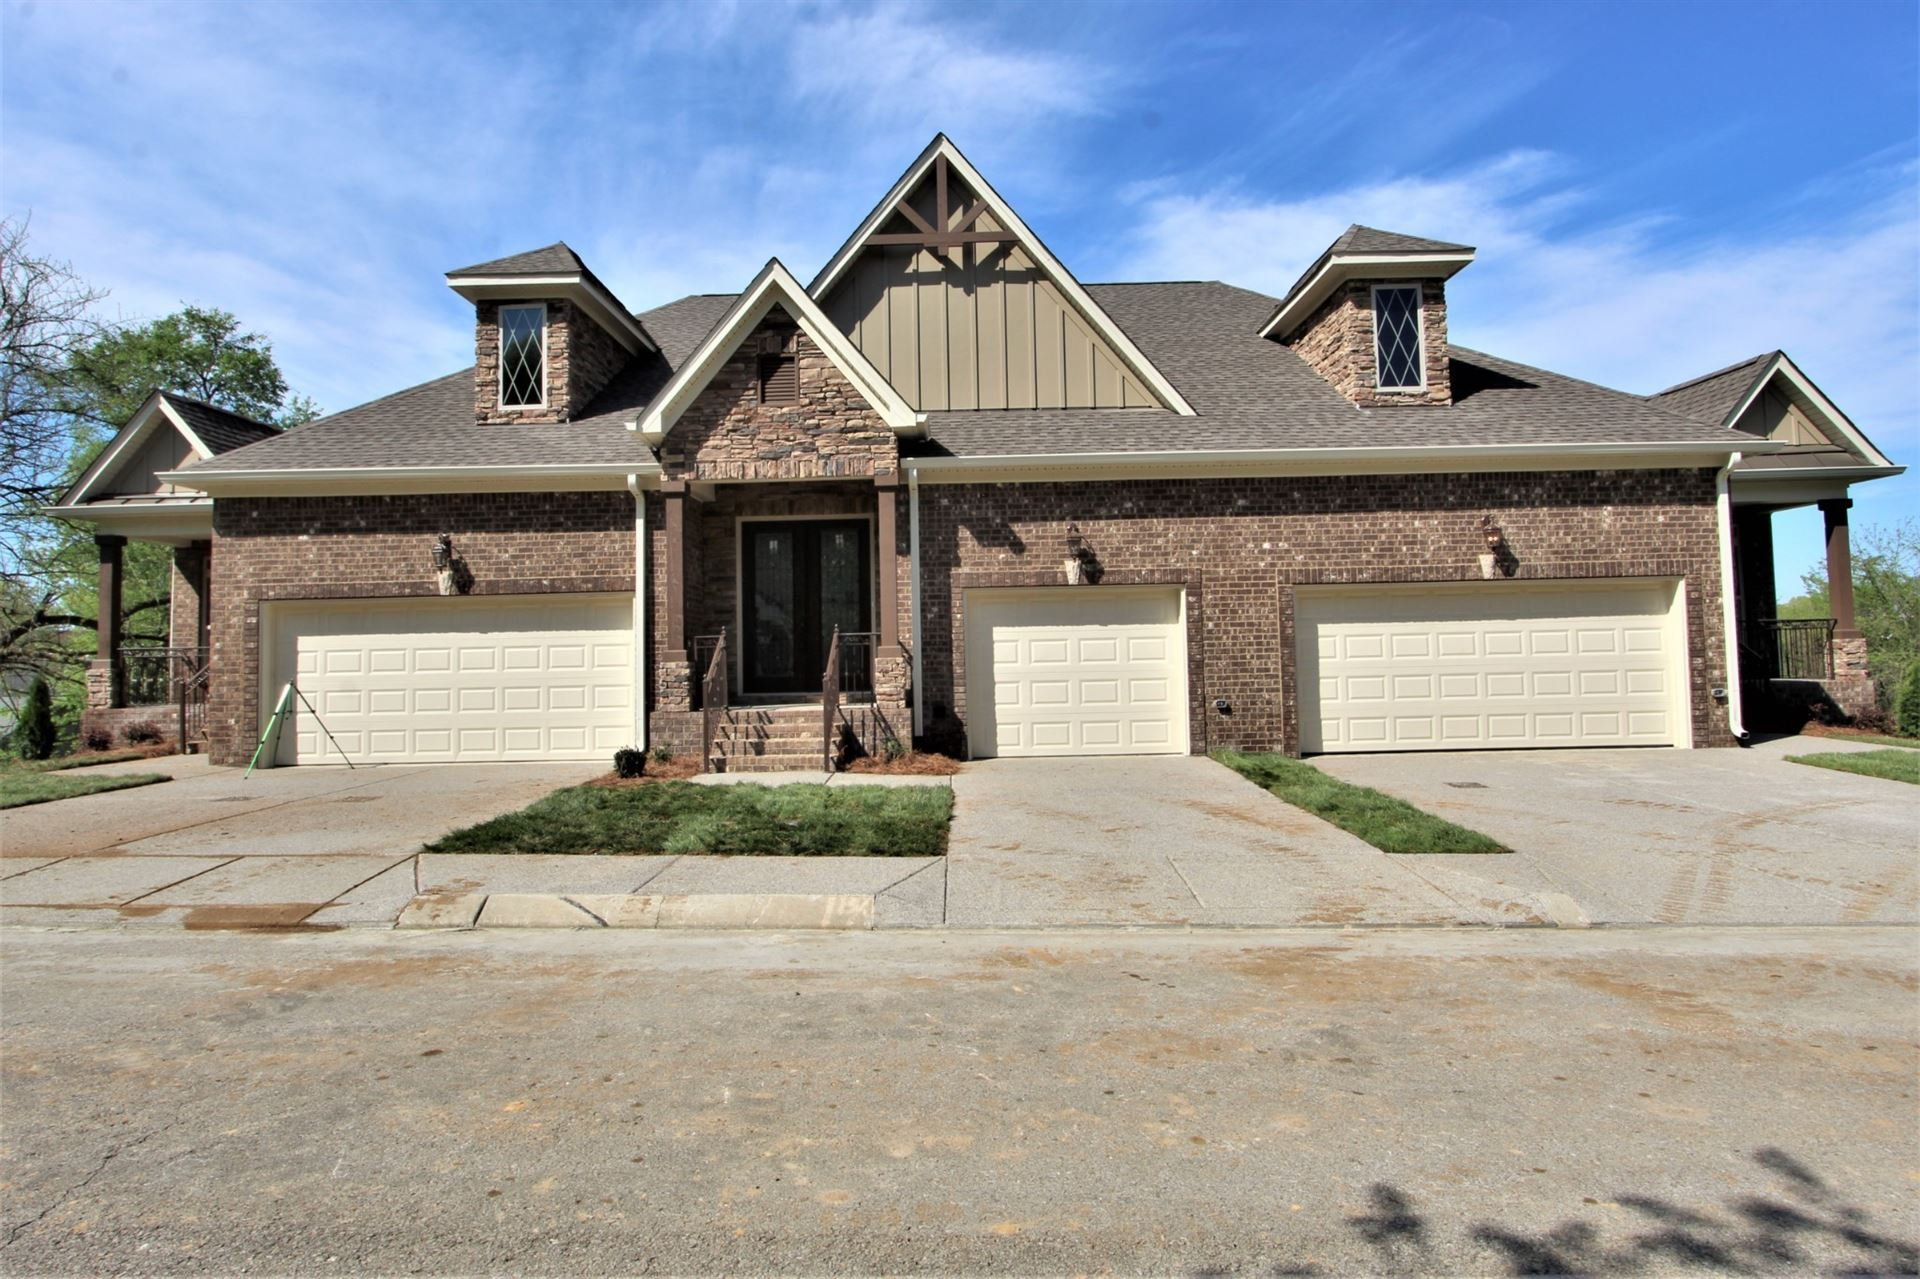 5018 Southfork Blvd #14, Old Hickory, TN 37138 - MLS#: 2205958